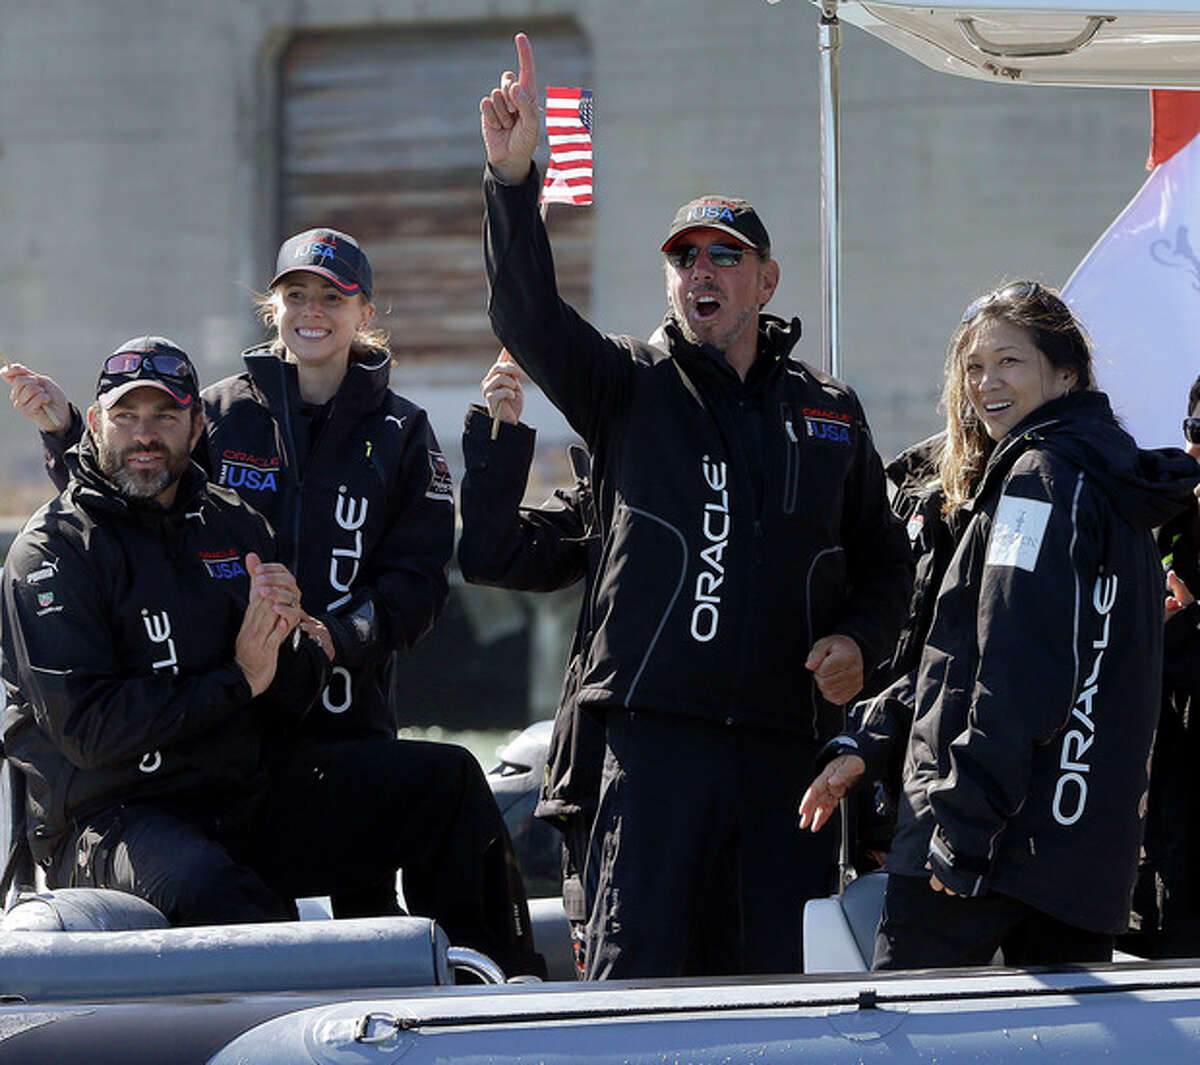 Oracle CEO Larry Ellison, center right, gestures after Oracle Team USA won the 18th race of the America's Cup sailing event against Emirates Team New Zealand, Tuesday, Sept. 24, 2013, in San Francisco. Oracle Team USA won races 17 and 18 to pull even with Emirates Team New Zealand. (AP Photo/Ben Margot)